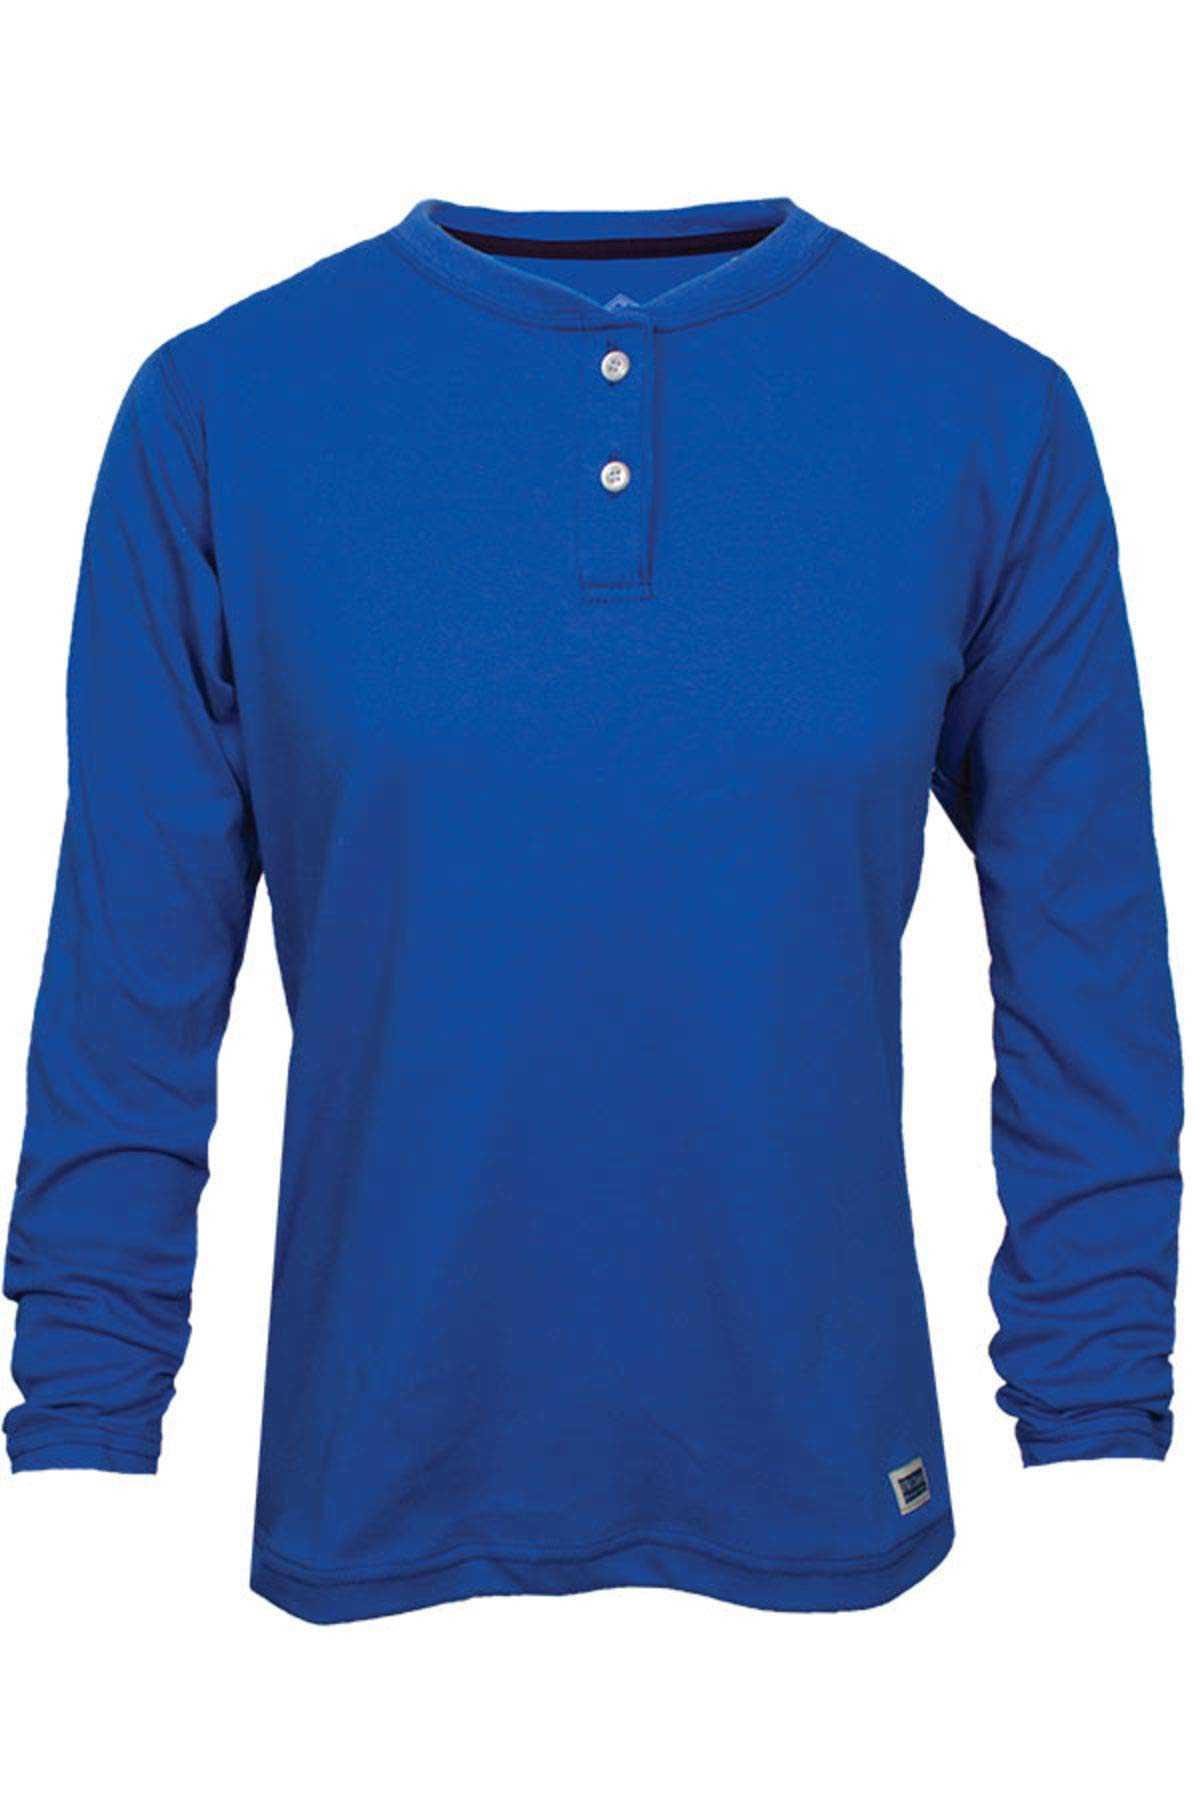 National Safety Apparel C54MSBSLSWMD Women's FR Classic Cotton Long Sleeve Henley, 100% FR Cotton, Medium, Royal Blue